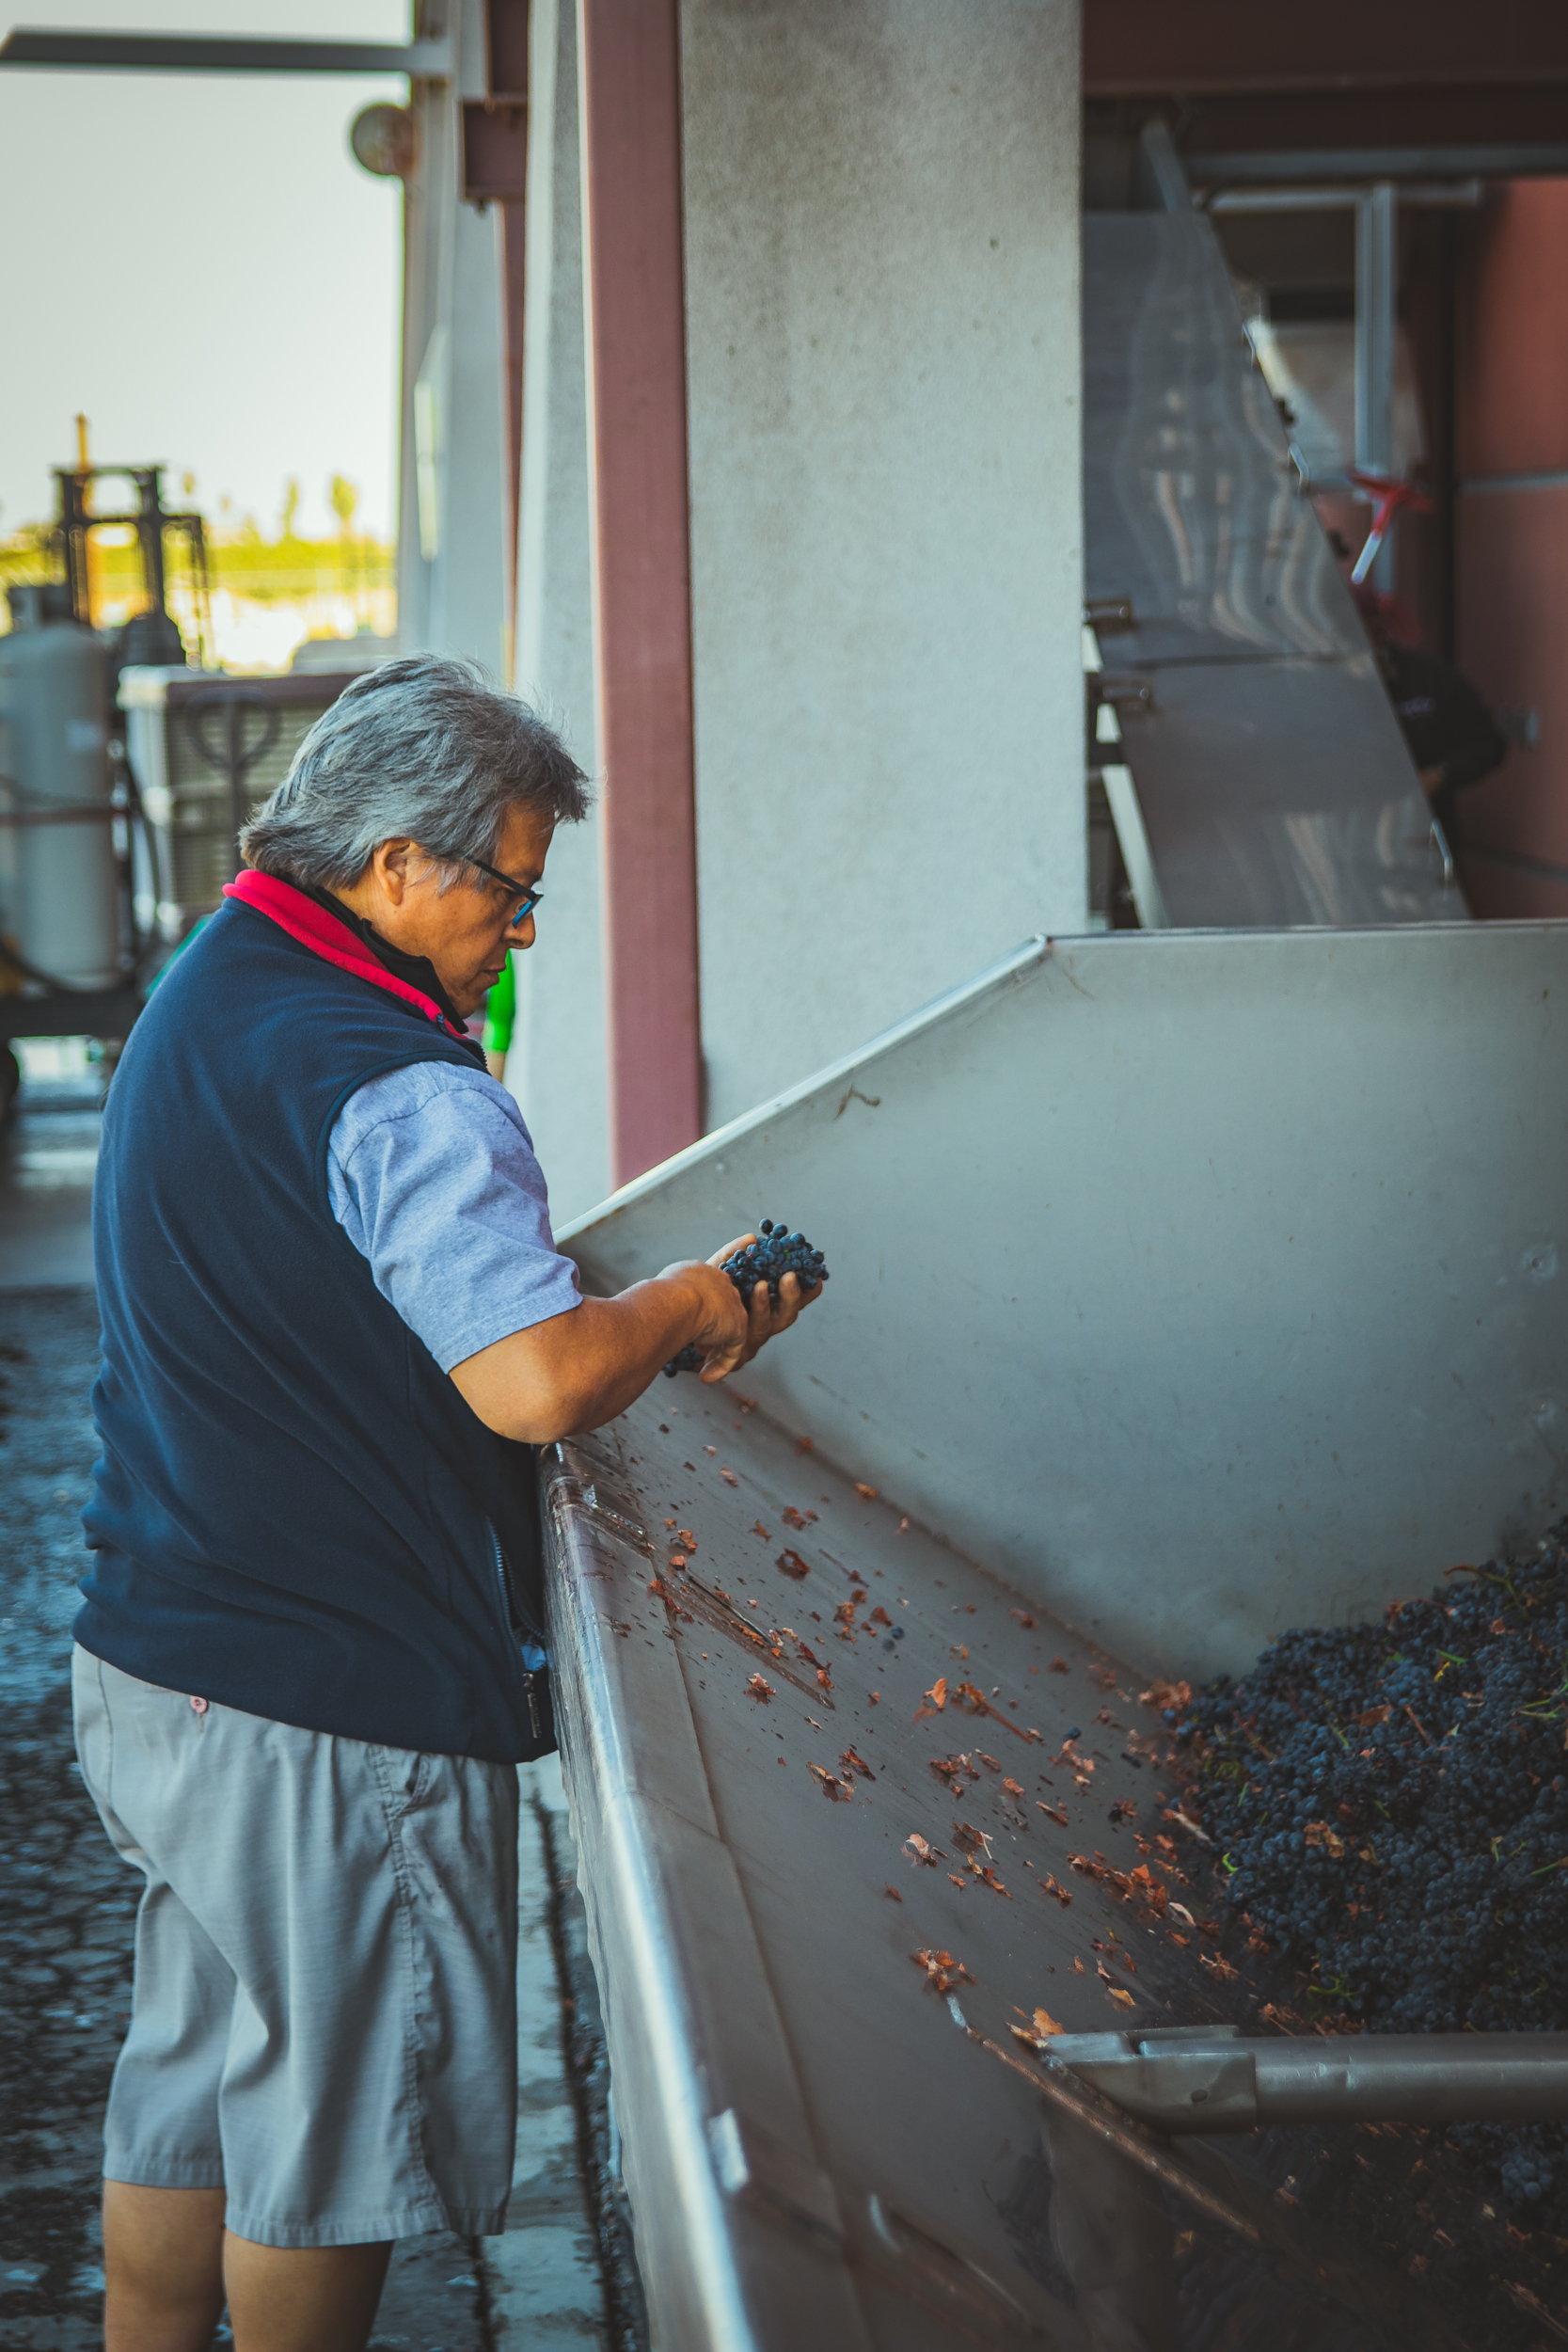 Dan our production manager inspecting grapes from the press